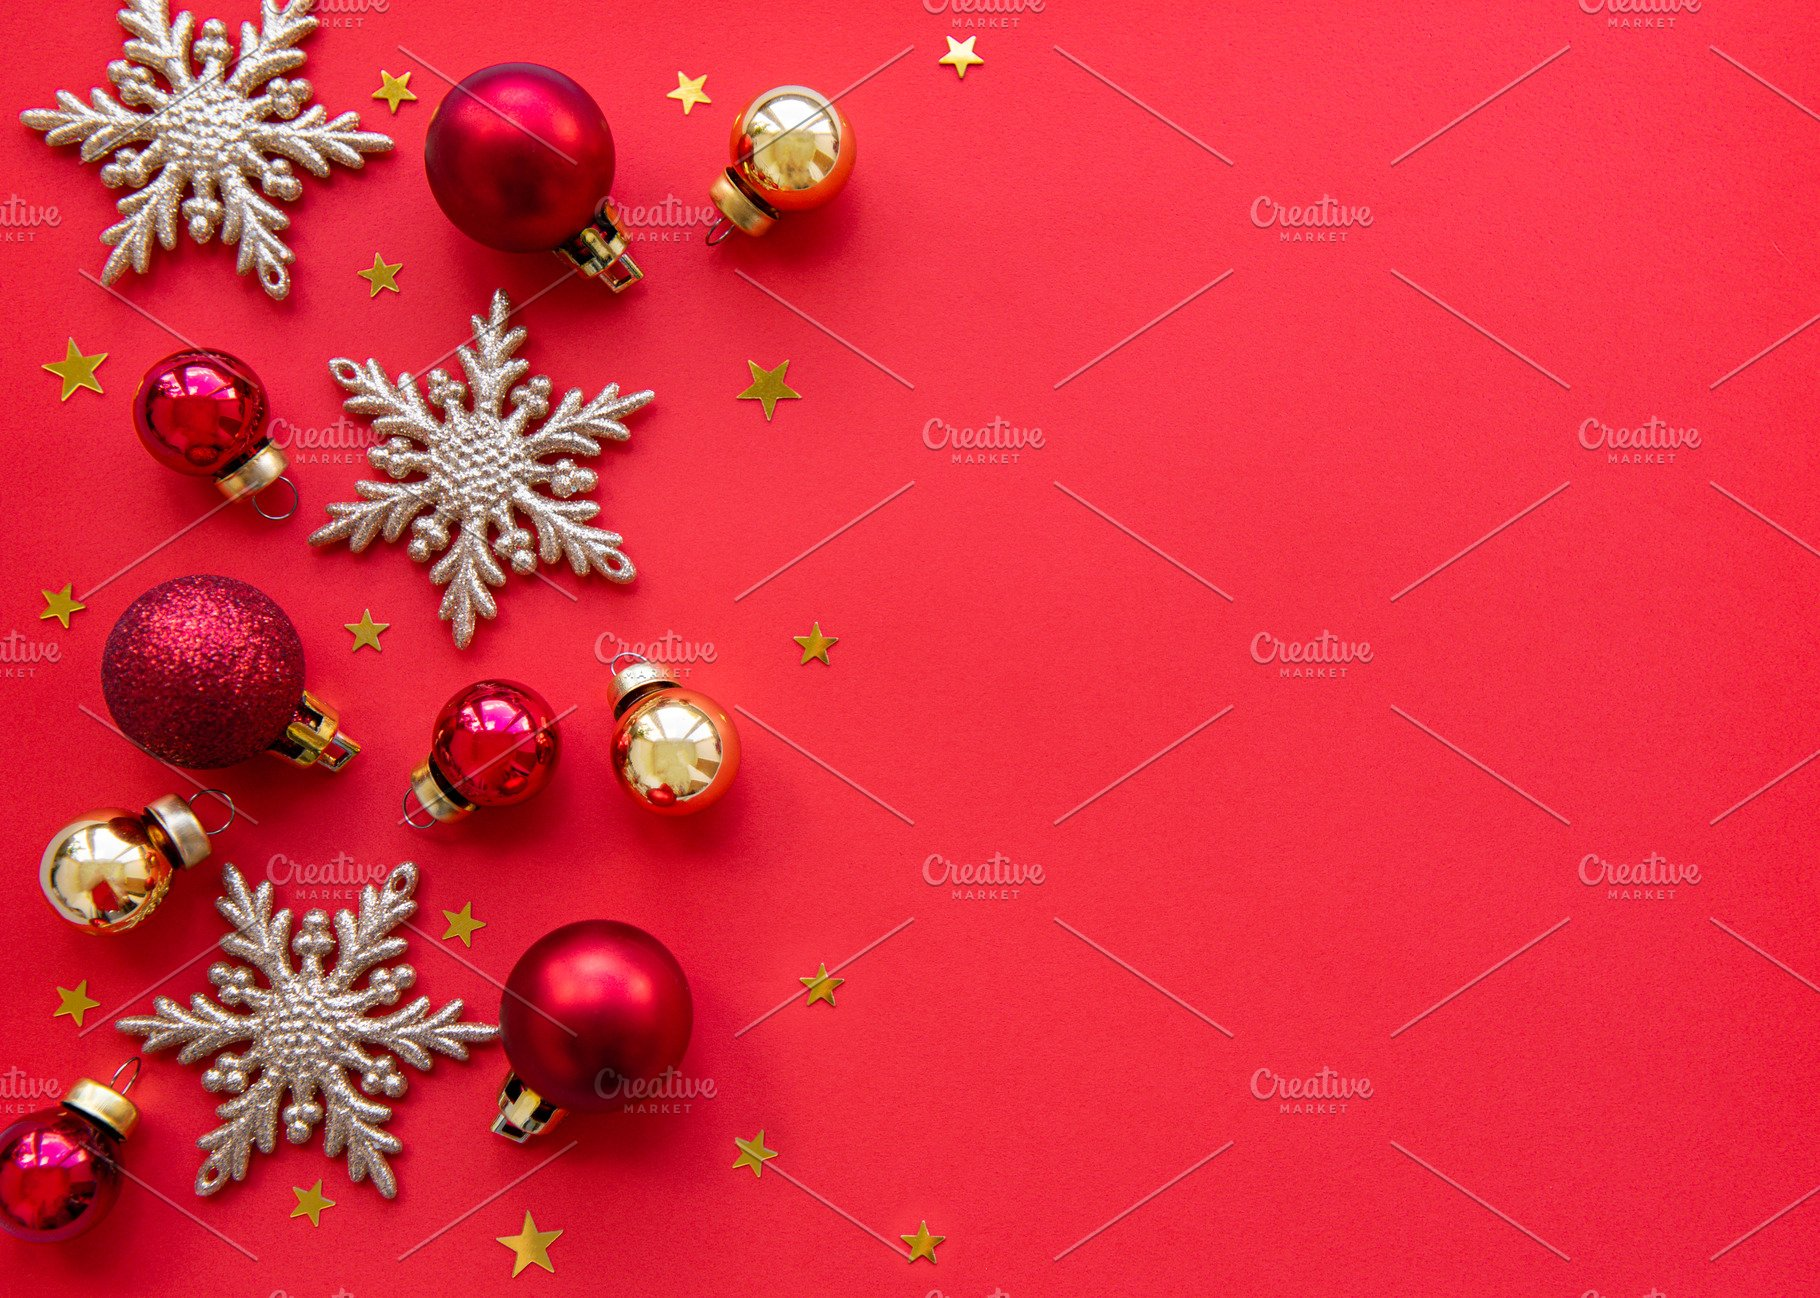 Christmas Holiday Background.Christmas Holiday Background